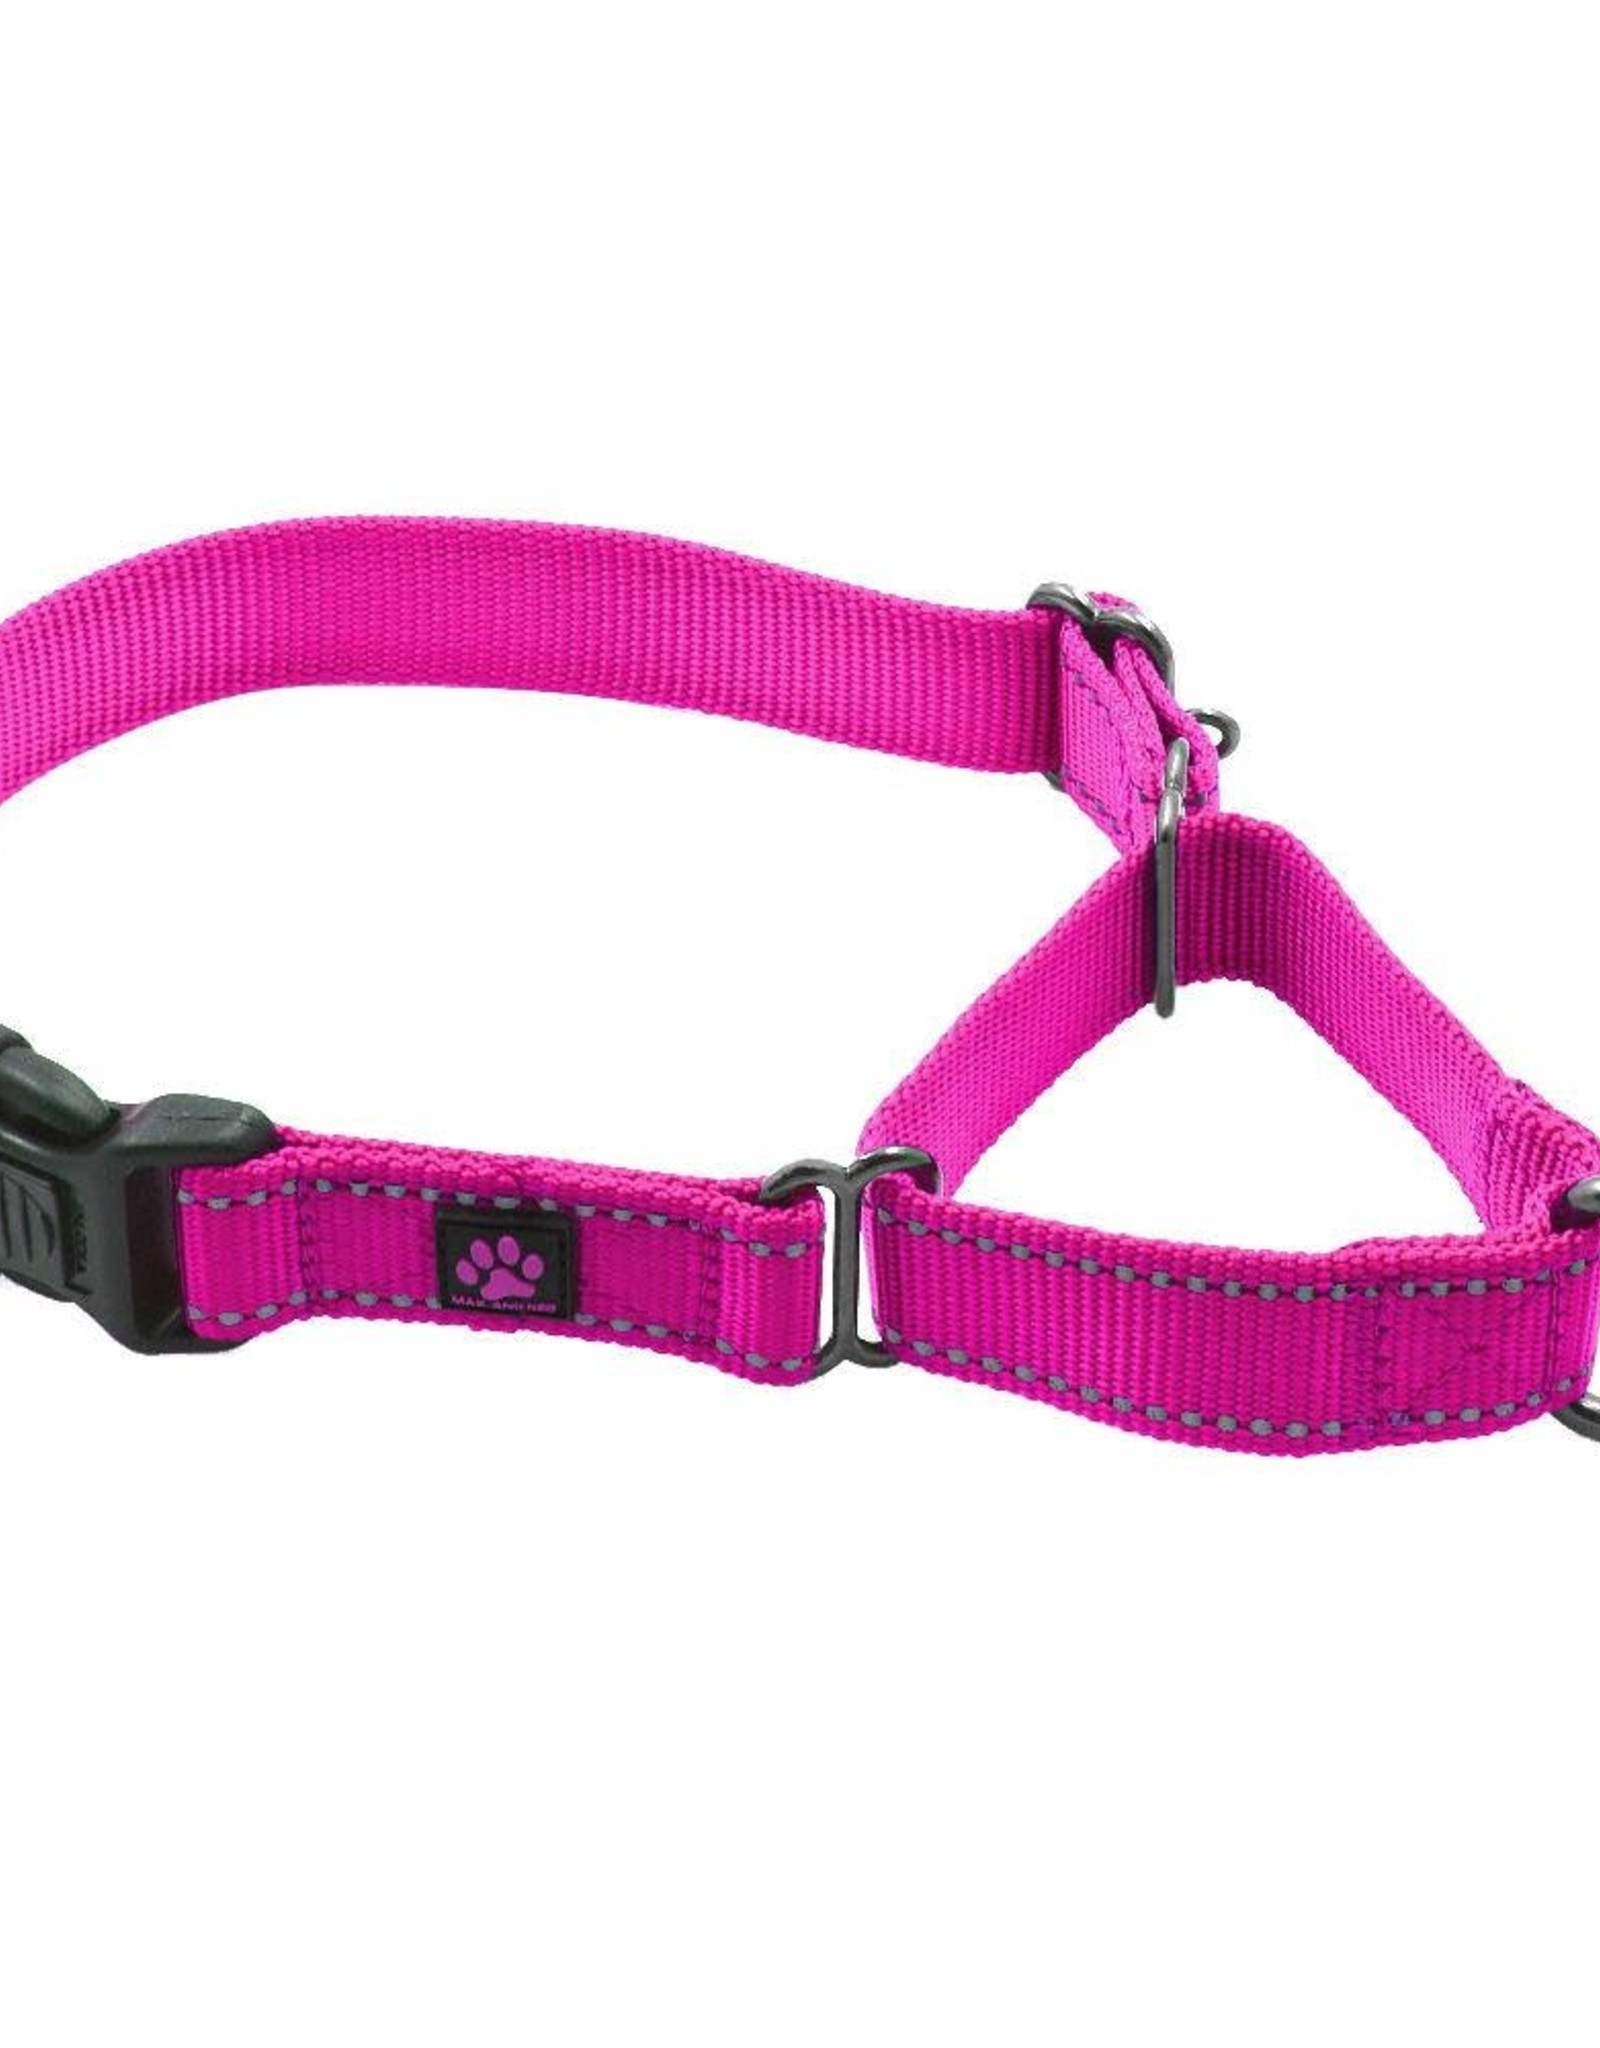 Max & Neo Max & Neo Collars - Small Pink Martingale